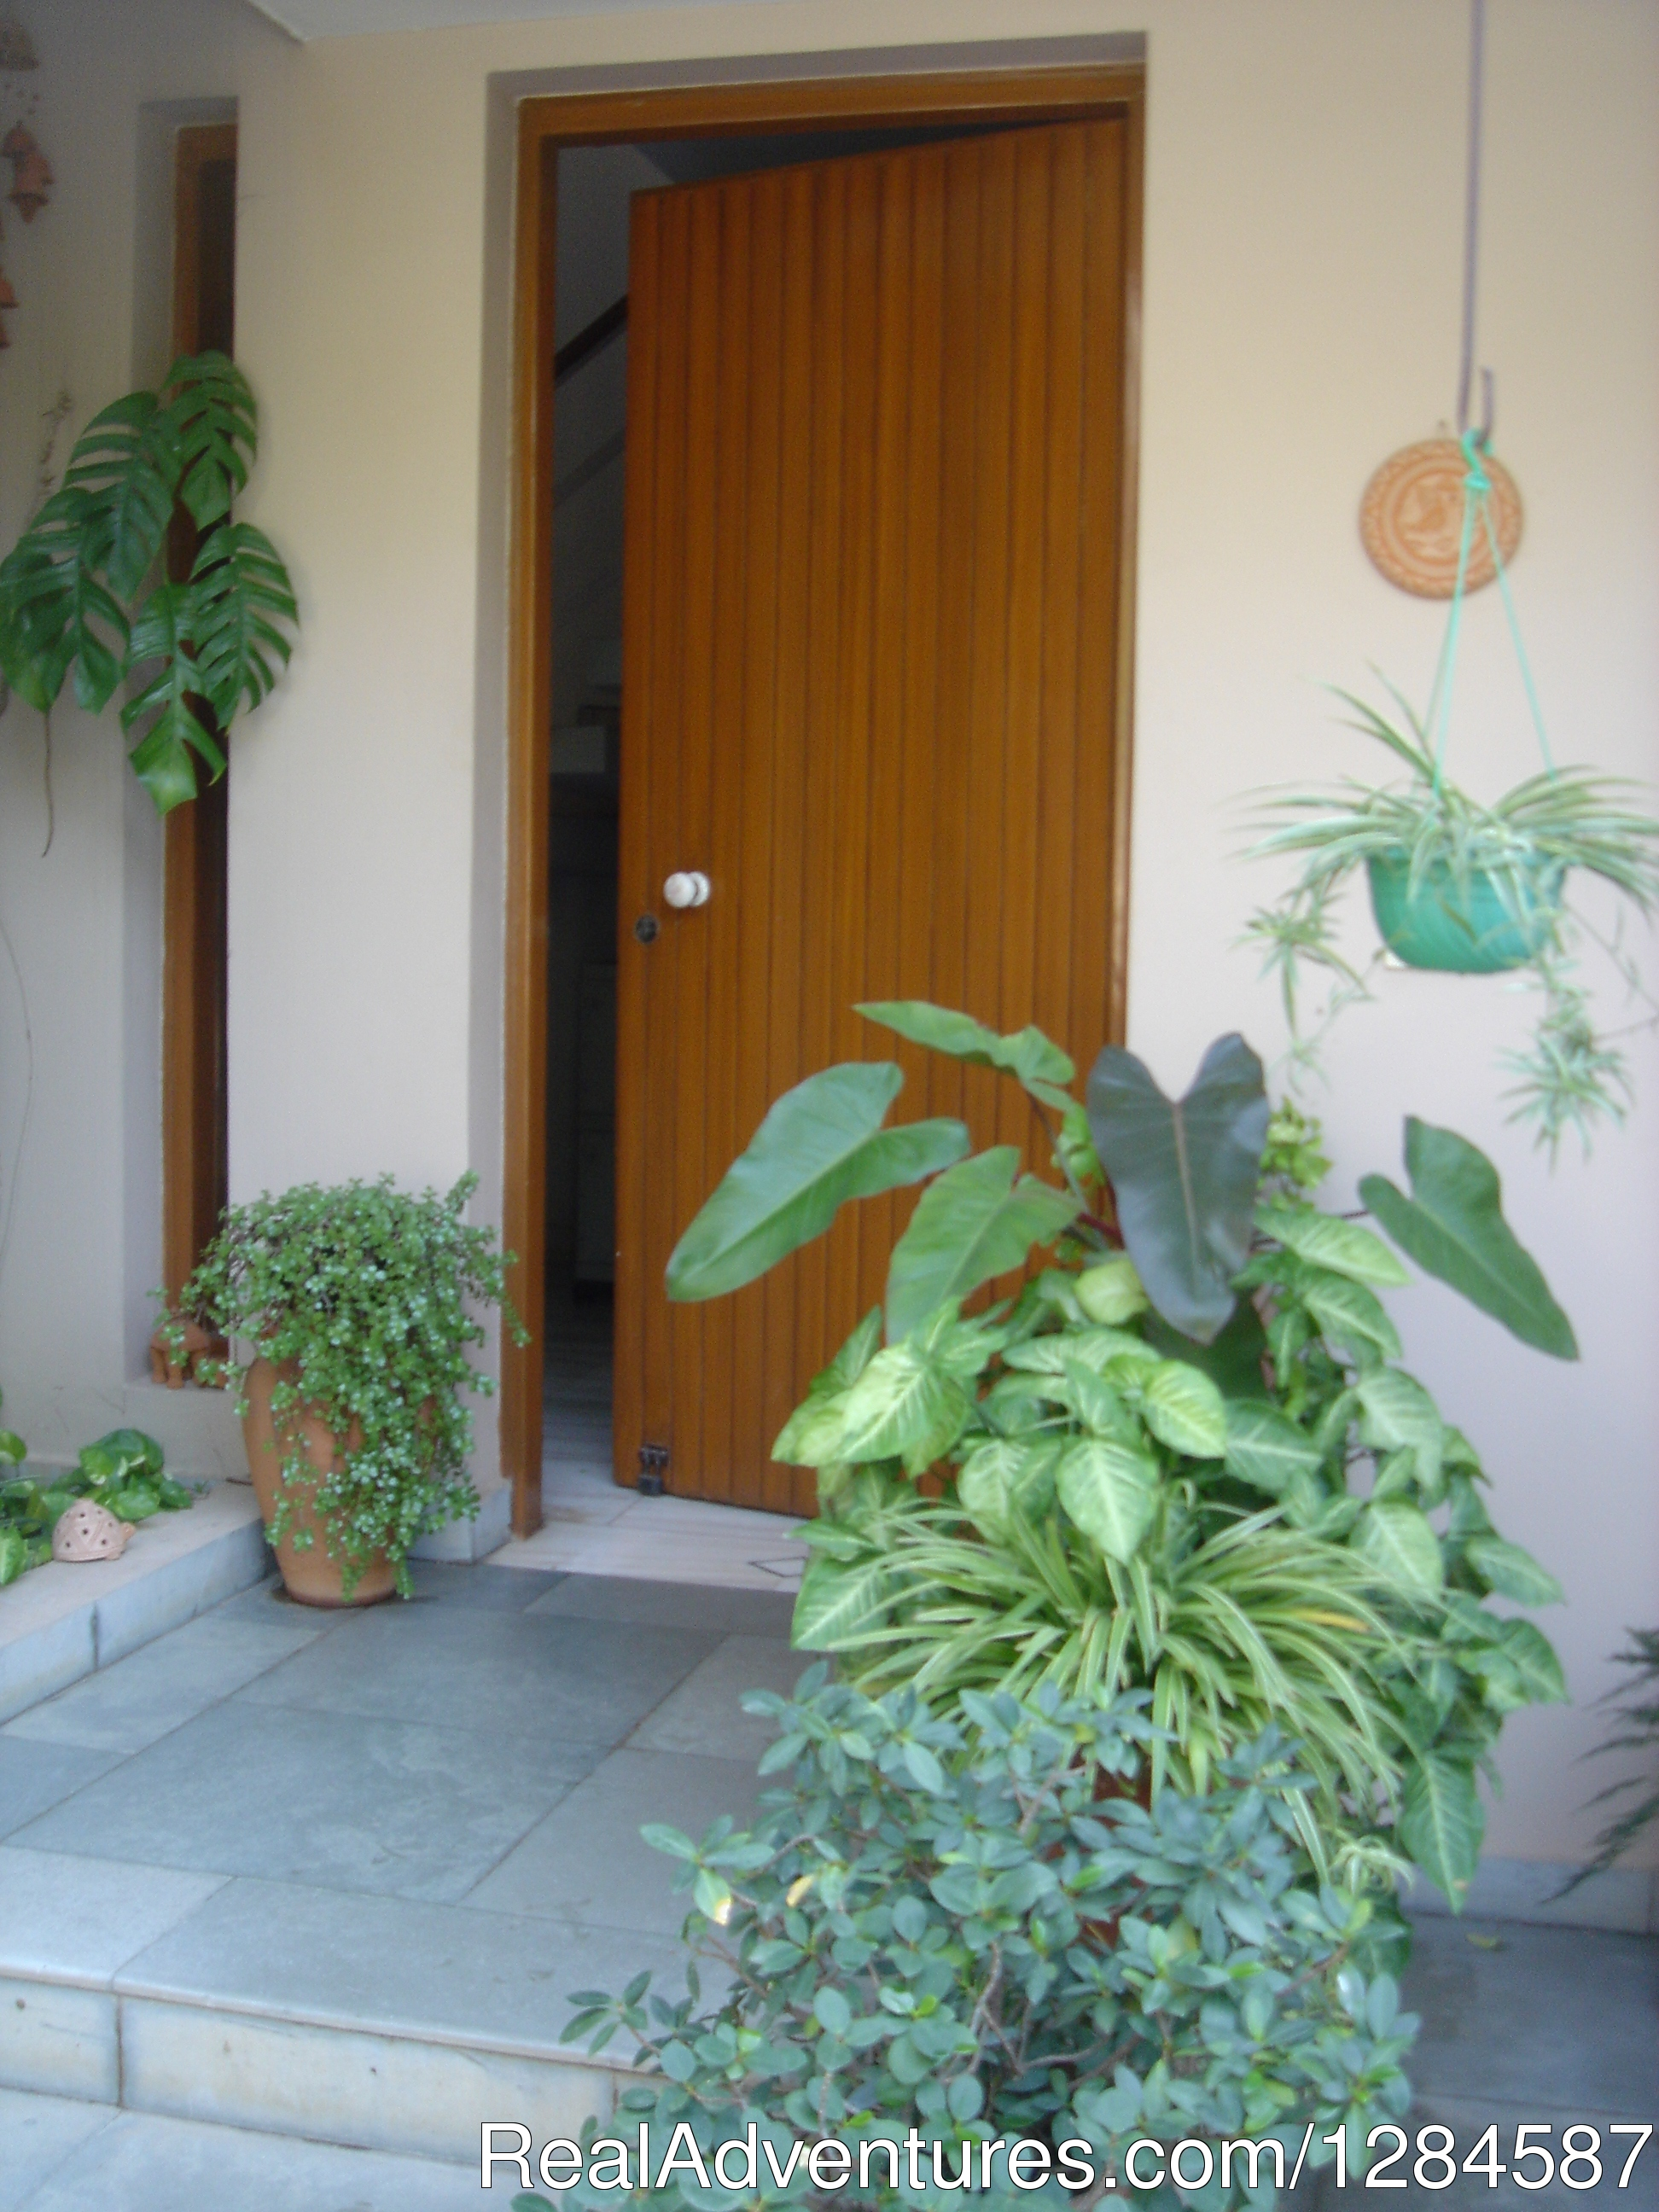 Welcome to our eco homestay